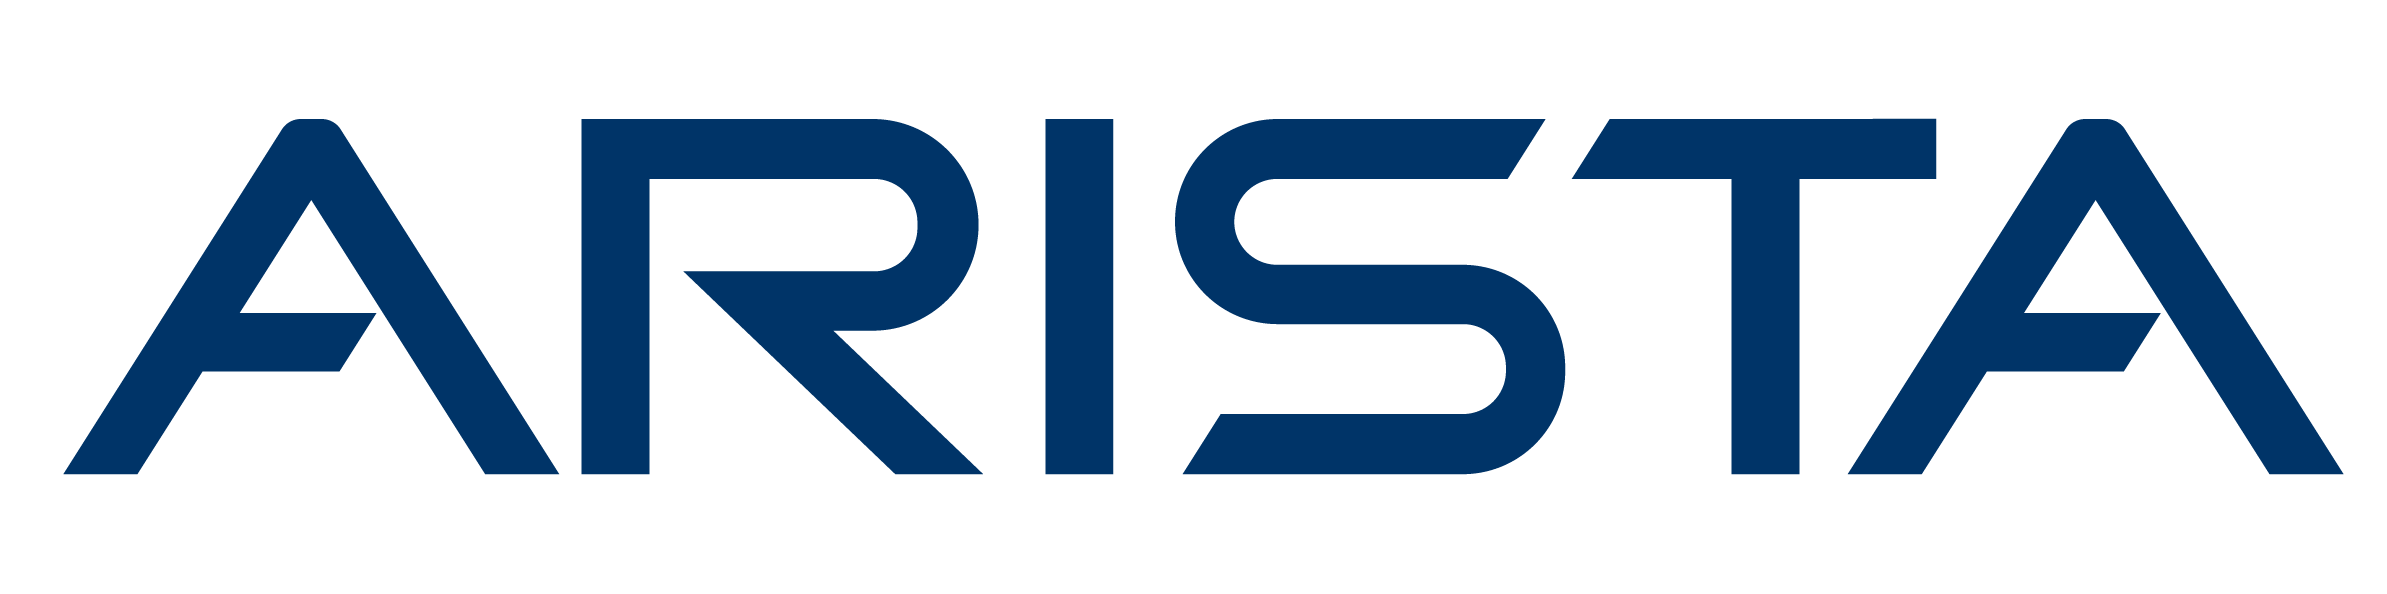 ARISTA_LOGO_VECTOR (1) (2)-01.png